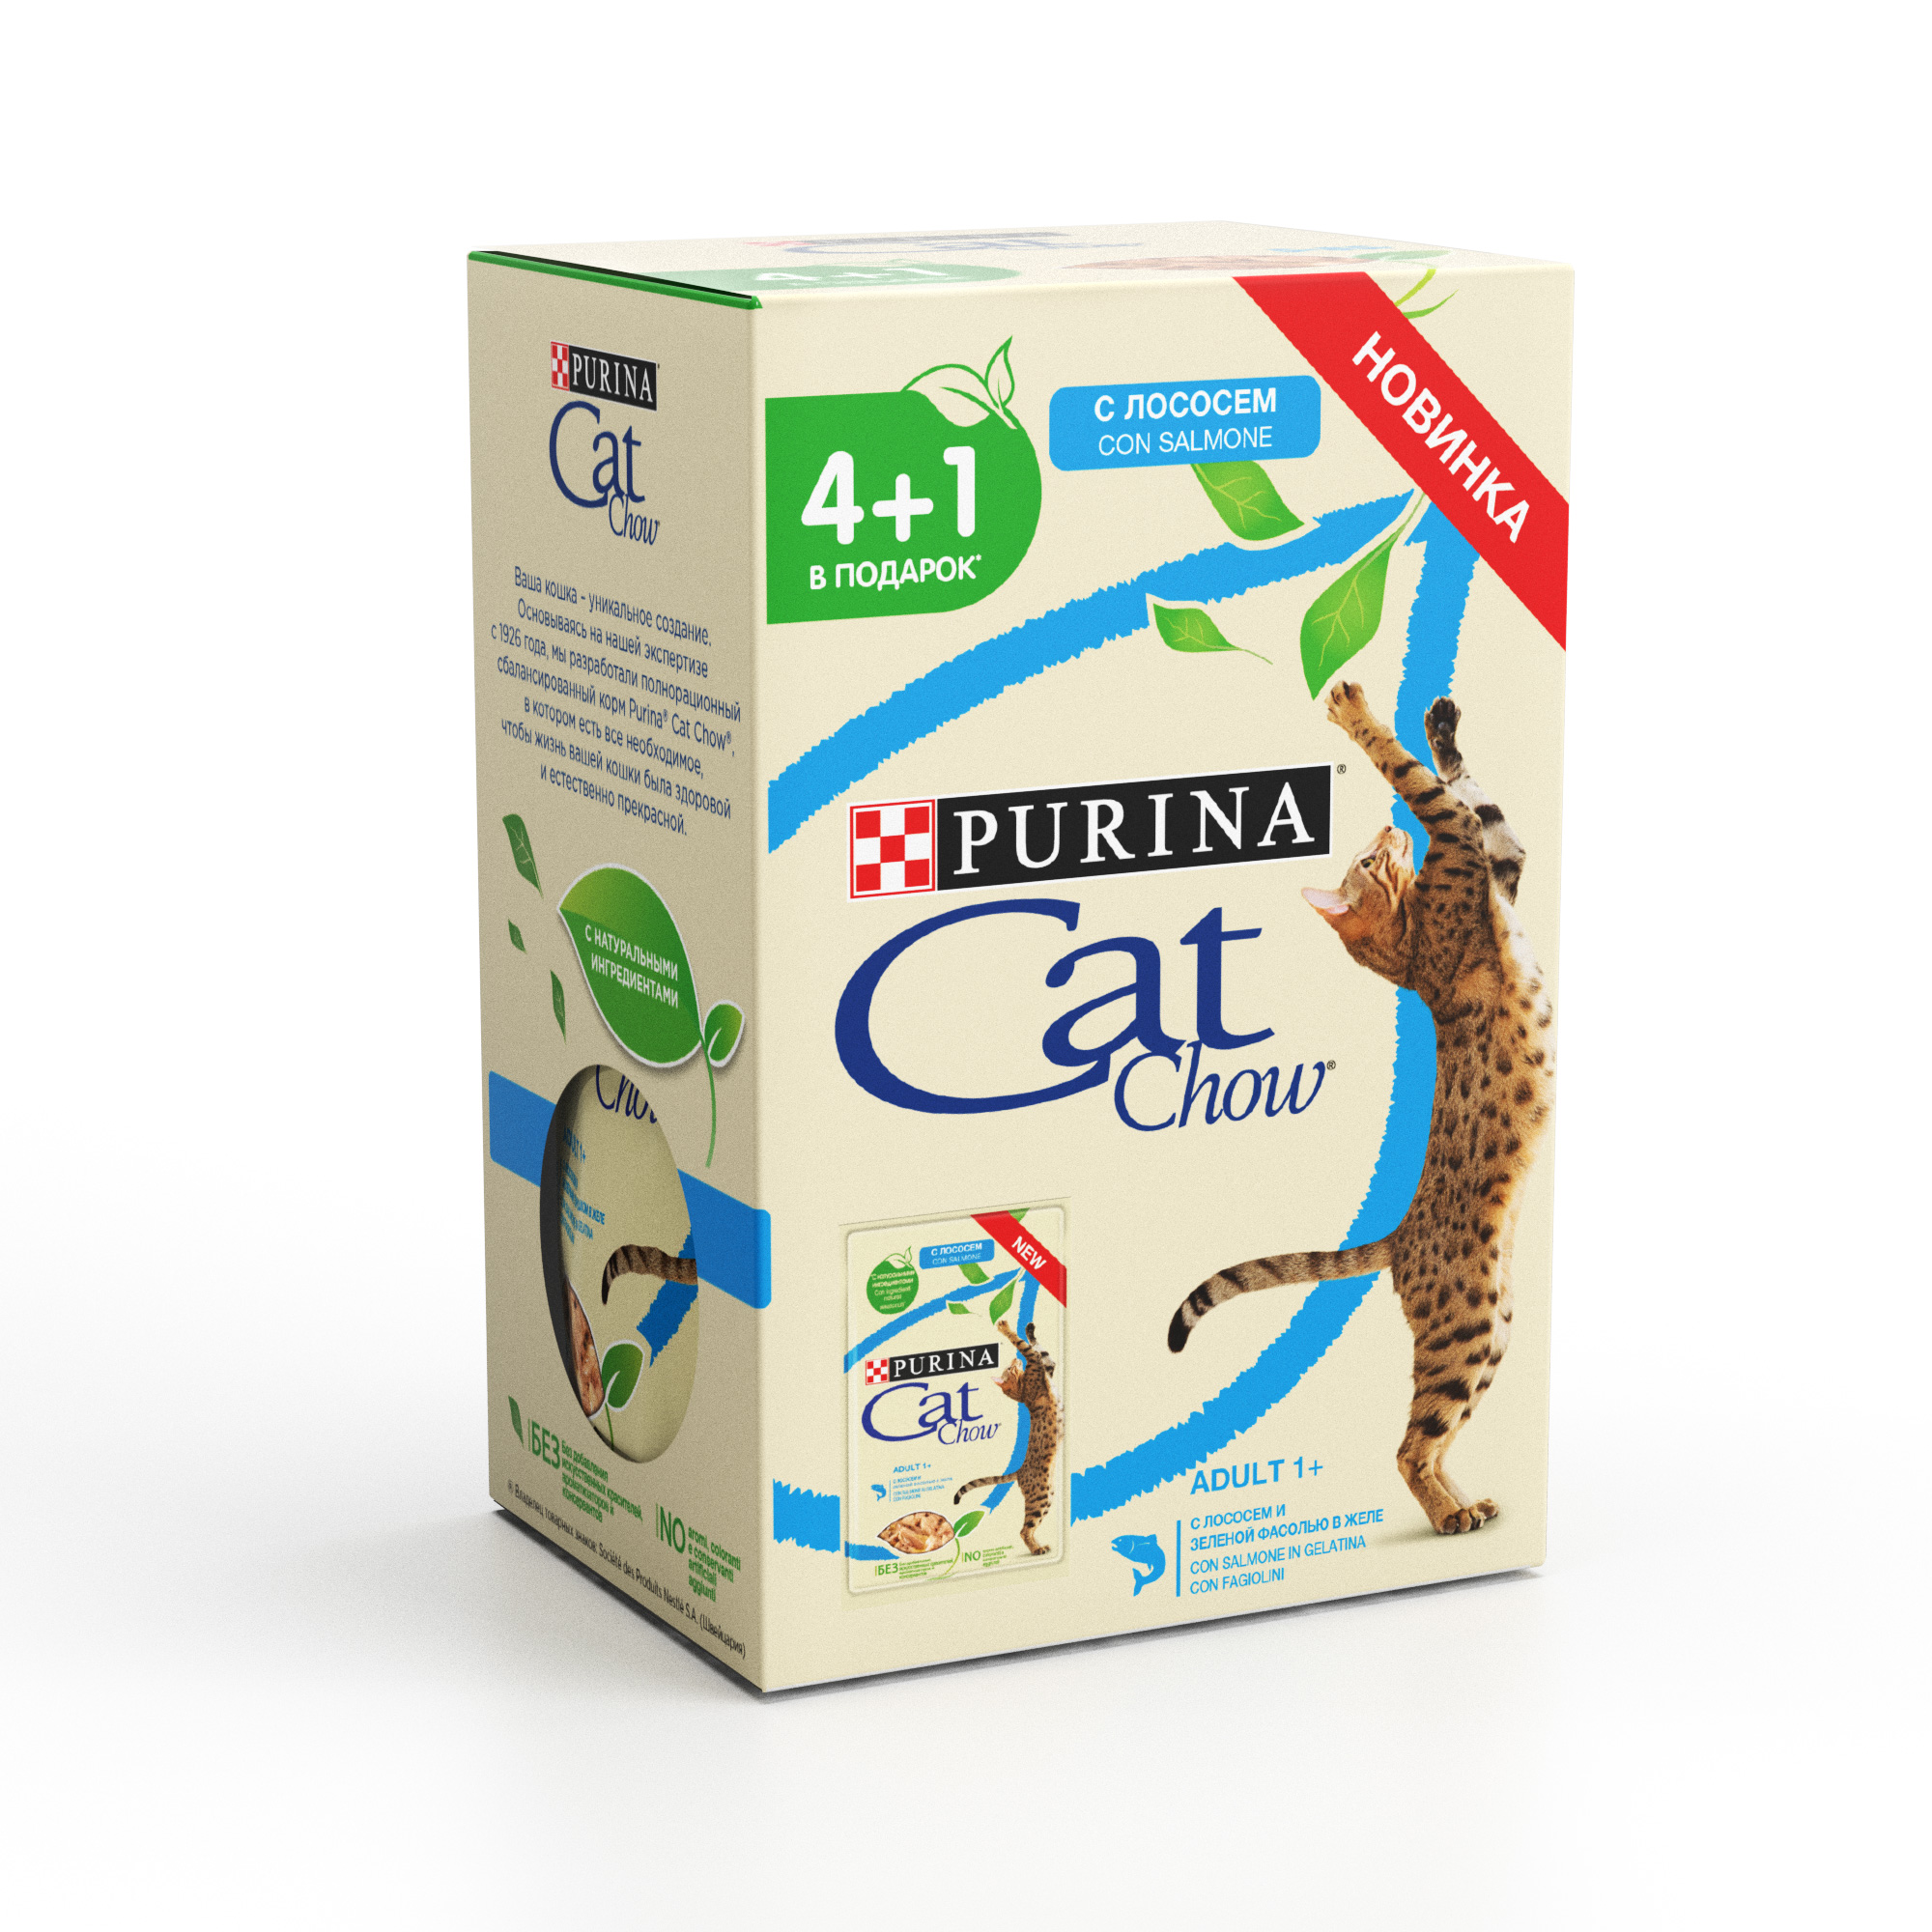 Promopak: Cat Chow wet cat food for adult cats with salmon and green peas, 4 + 1 pouch x 85 g sexy 4 in 1 cat palm gloves hair clip cat tail butterfly tie for cosplay black pink